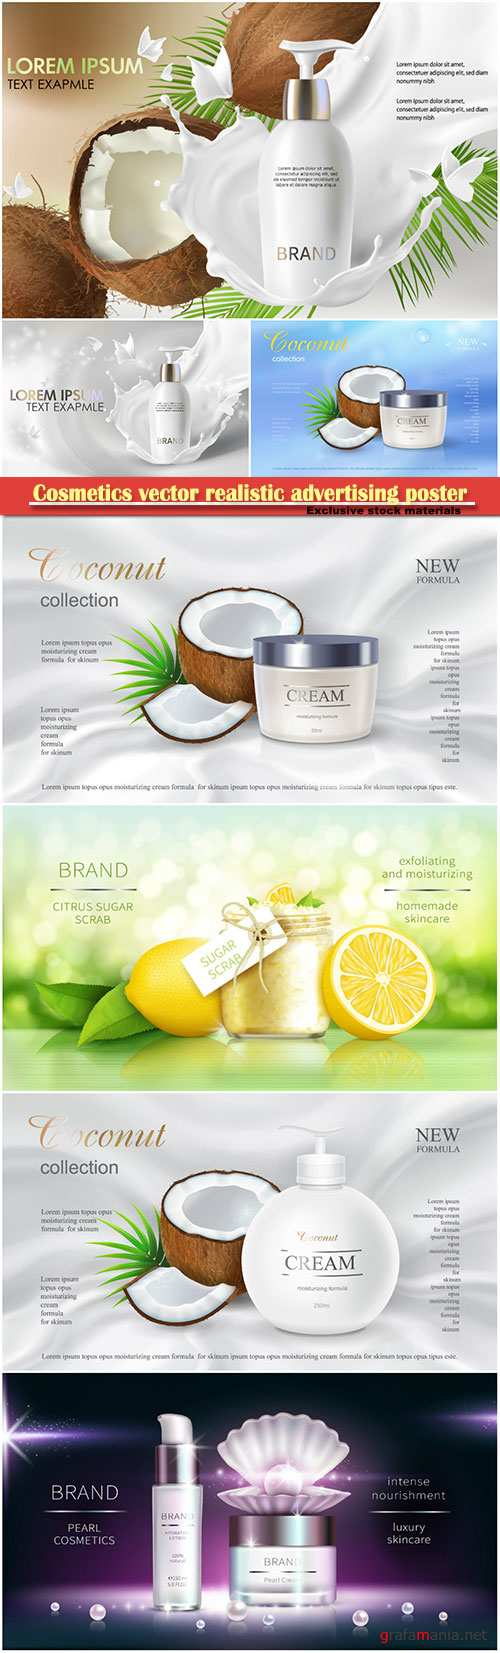 Cosmetics vector realistic advertising poster, packaging for cosmetic products, mockup for glossy magazine